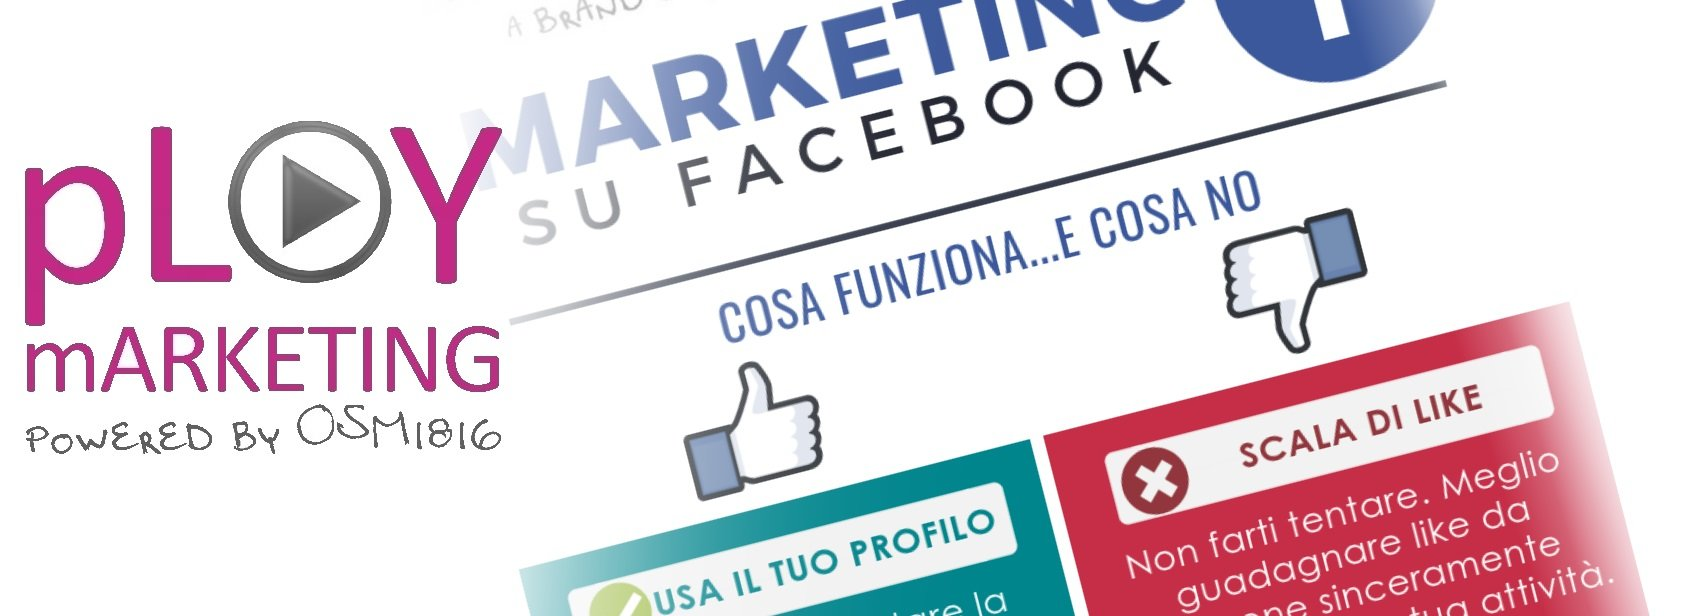 Infografica: Marketing su Facebook – cosa funziona e cosa no?